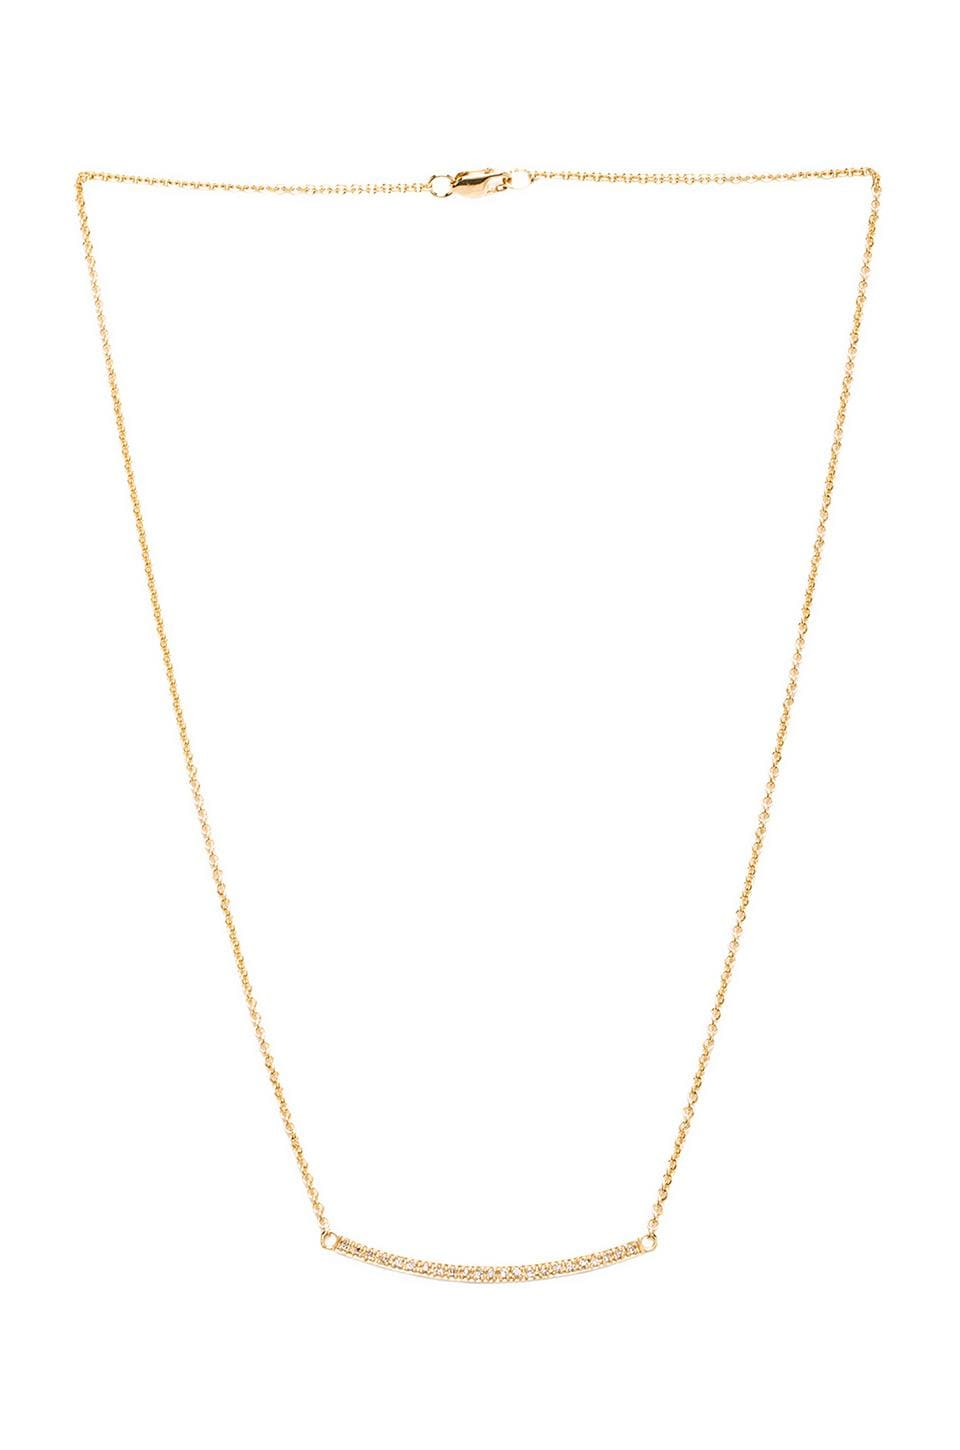 joolz by Martha Calvo Diamond Curved Pave Bar Necklace in Gold